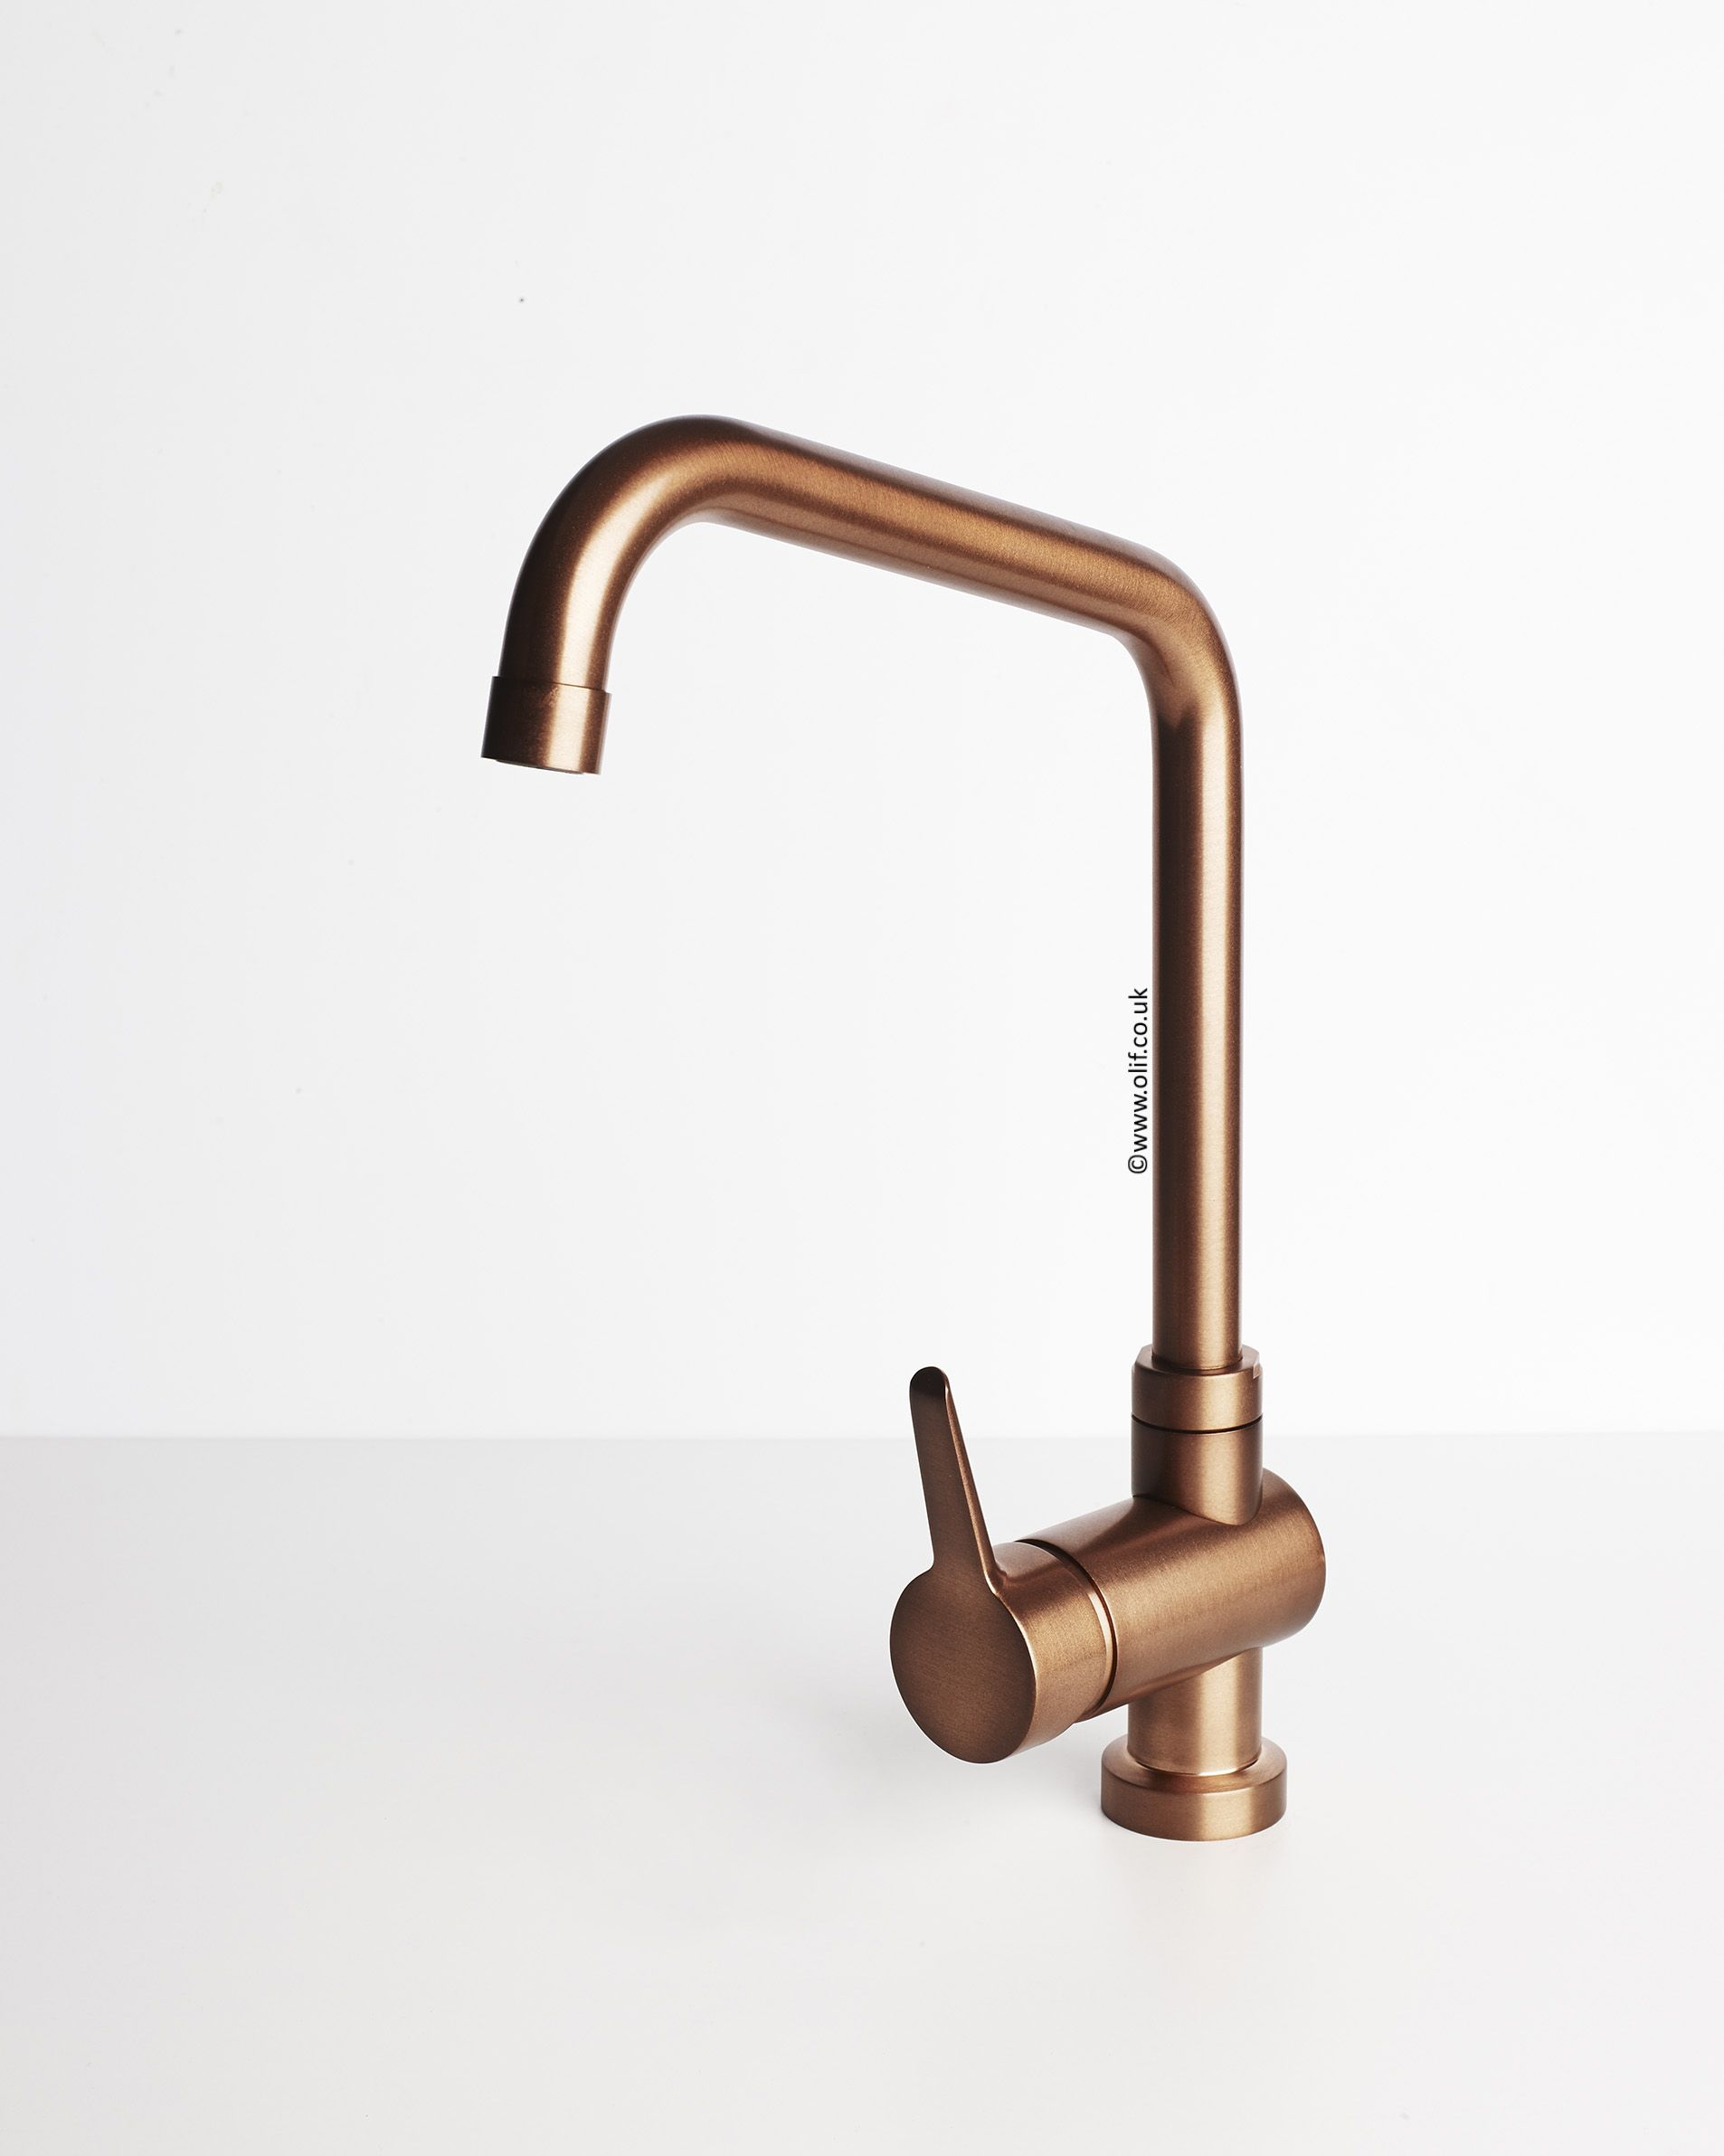 Kitchen Mixer Tap Primo Rustic Copper Kitchen Mixer Tap Alveus Copper Sinks